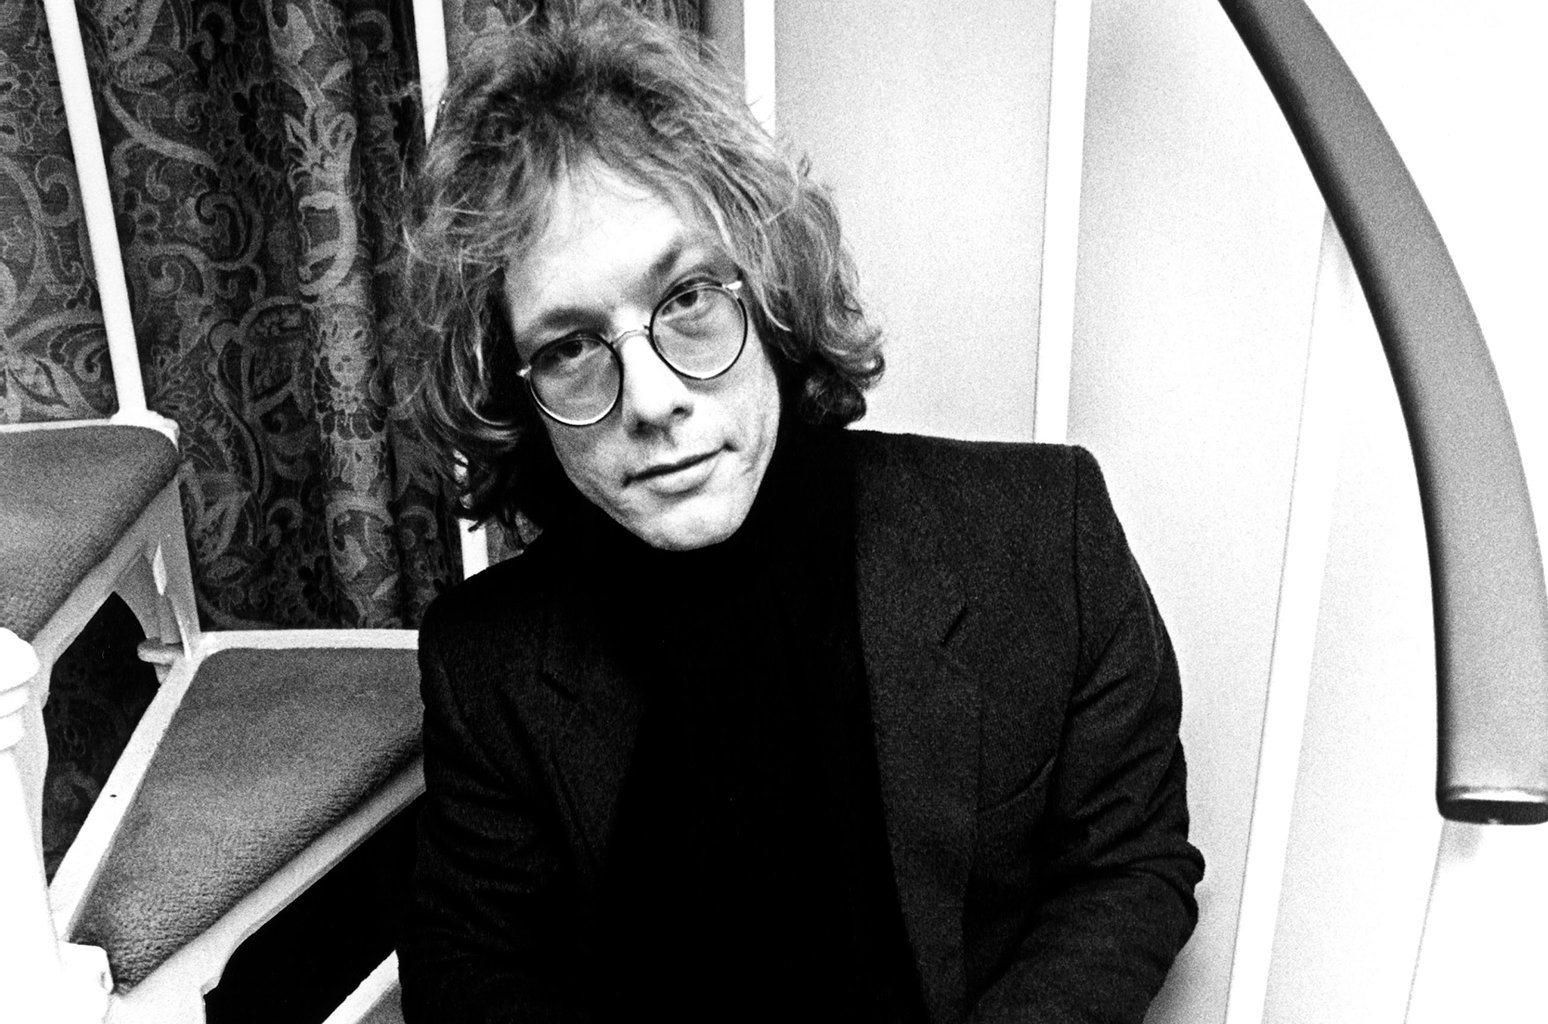 Happy Birthday and Rip Warren Zevon